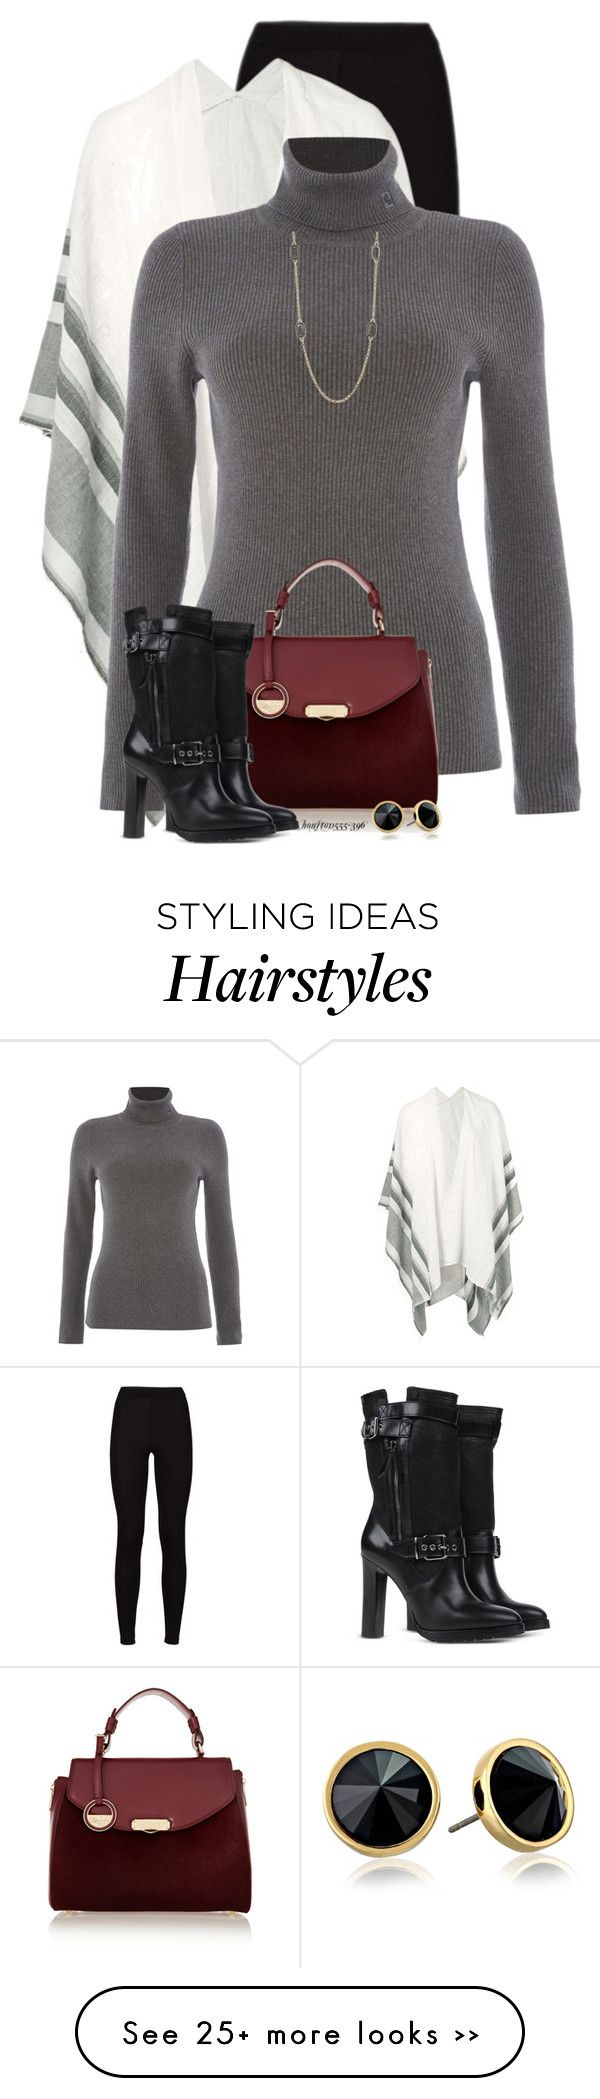 """Poncho & Leggings Again!"" by houston555-396 on Polyvore featuring Lemlem, Lauren Ralph Lauren, Versace, Burberry, Nordstrom Rack and Trina Turk LA"